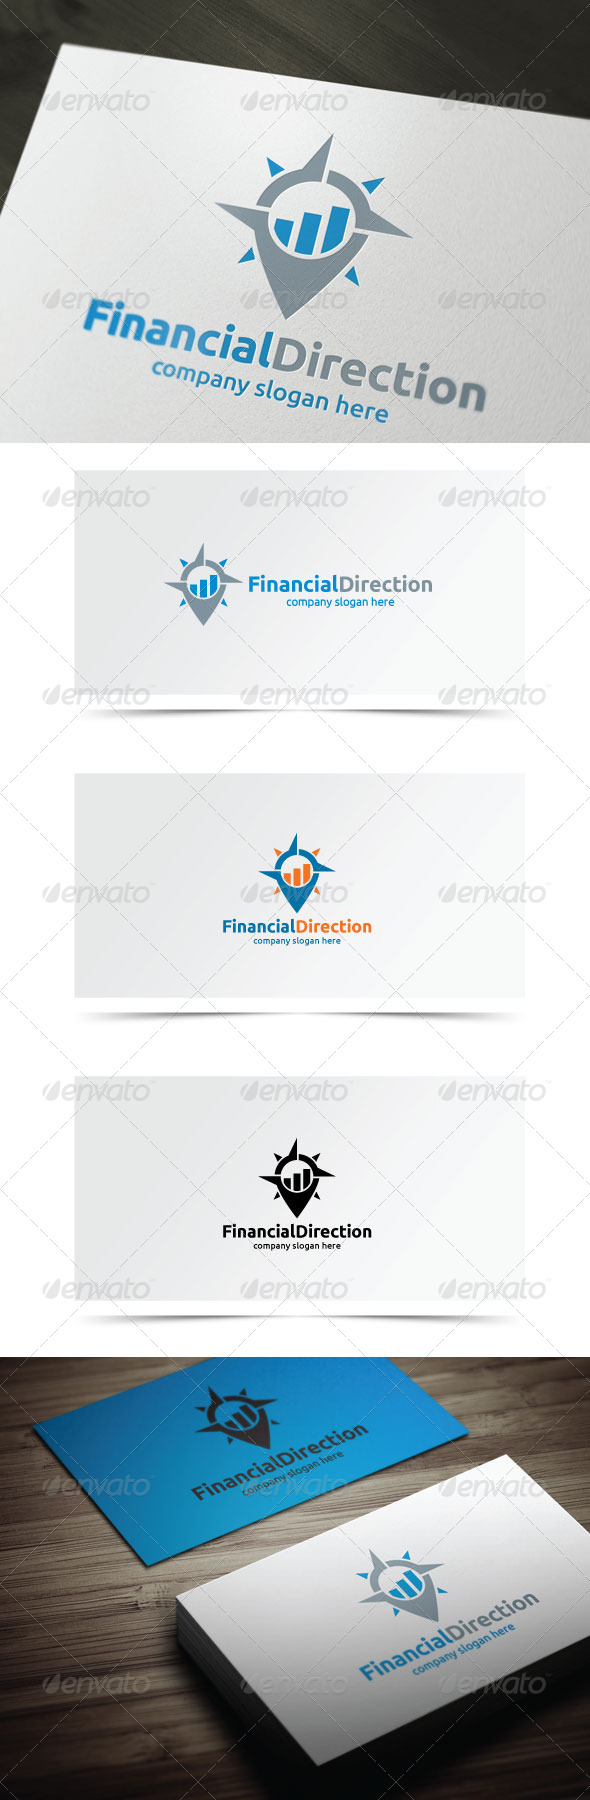 GraphicRiver Financial Direction 7674726